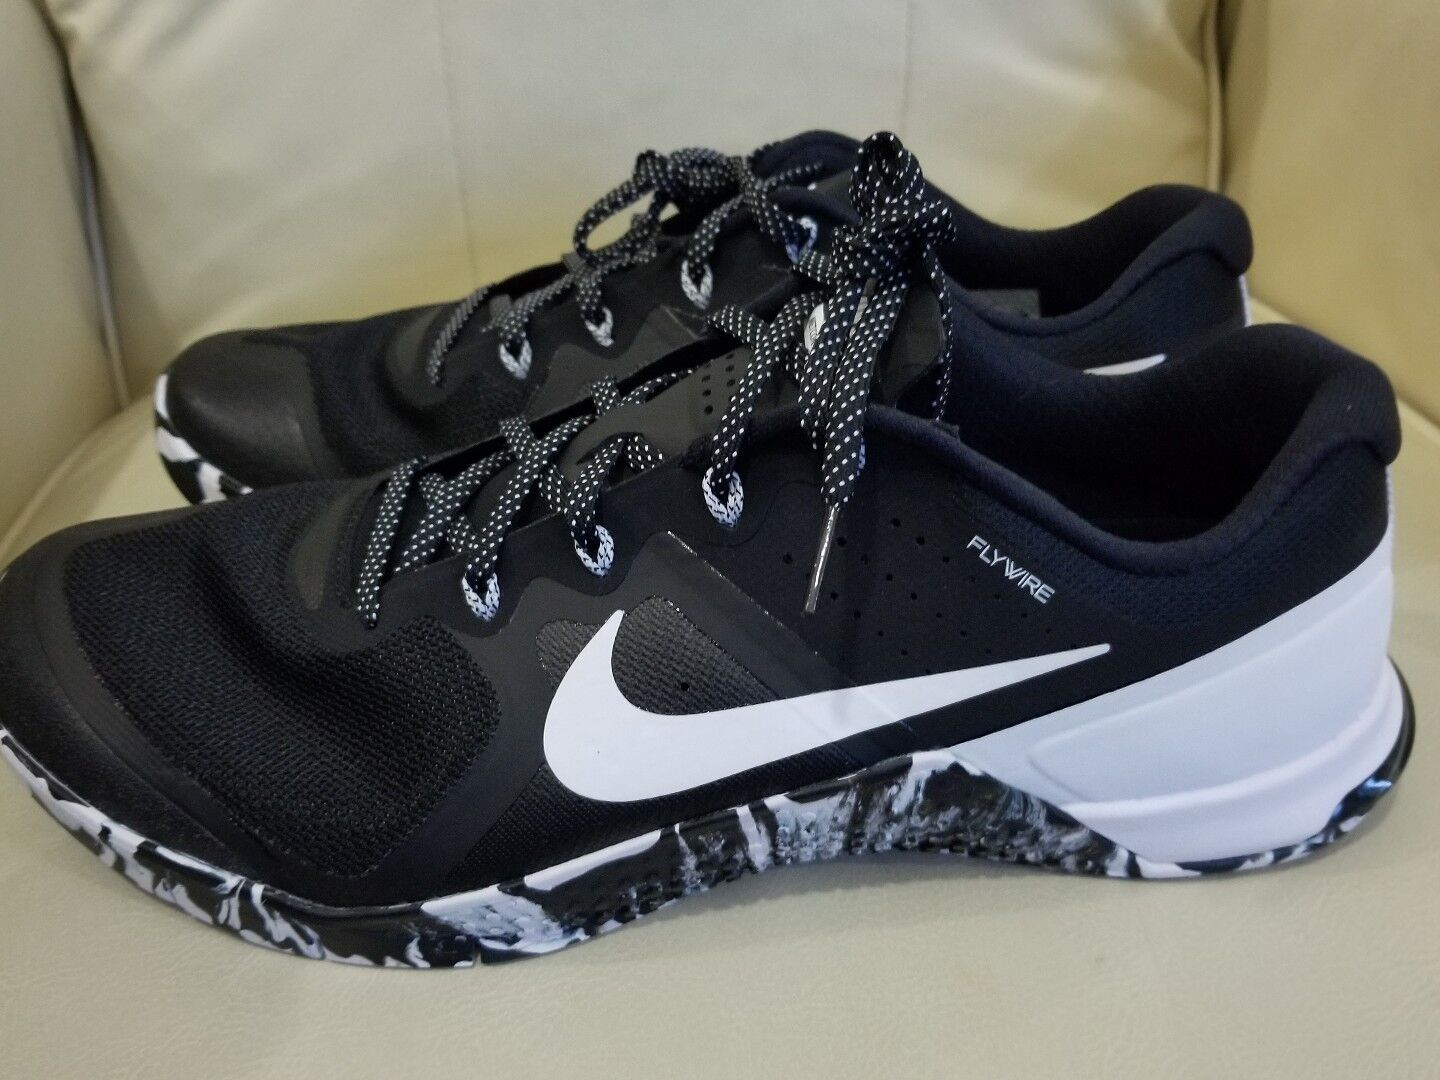 Wild casual shoes Nike Mens Metcon 2 819899-010 Comfortable